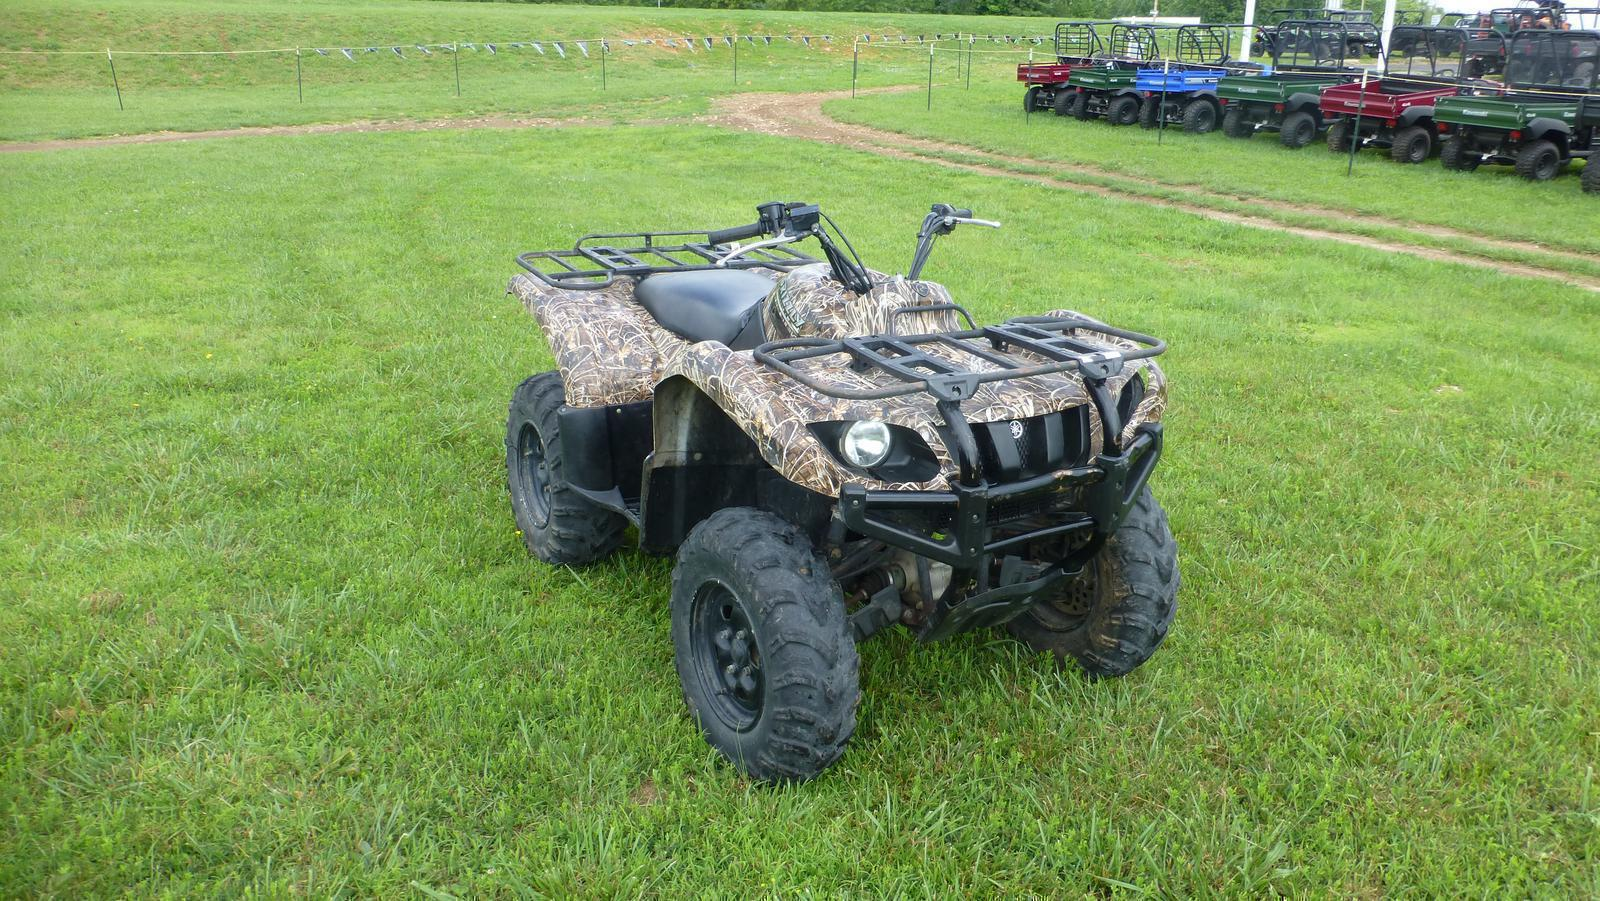 Yamaha Grizzly 660 >> 2006 Yamaha Grizzly 660 Automatic 4x4 Ducks Unlimited Edition